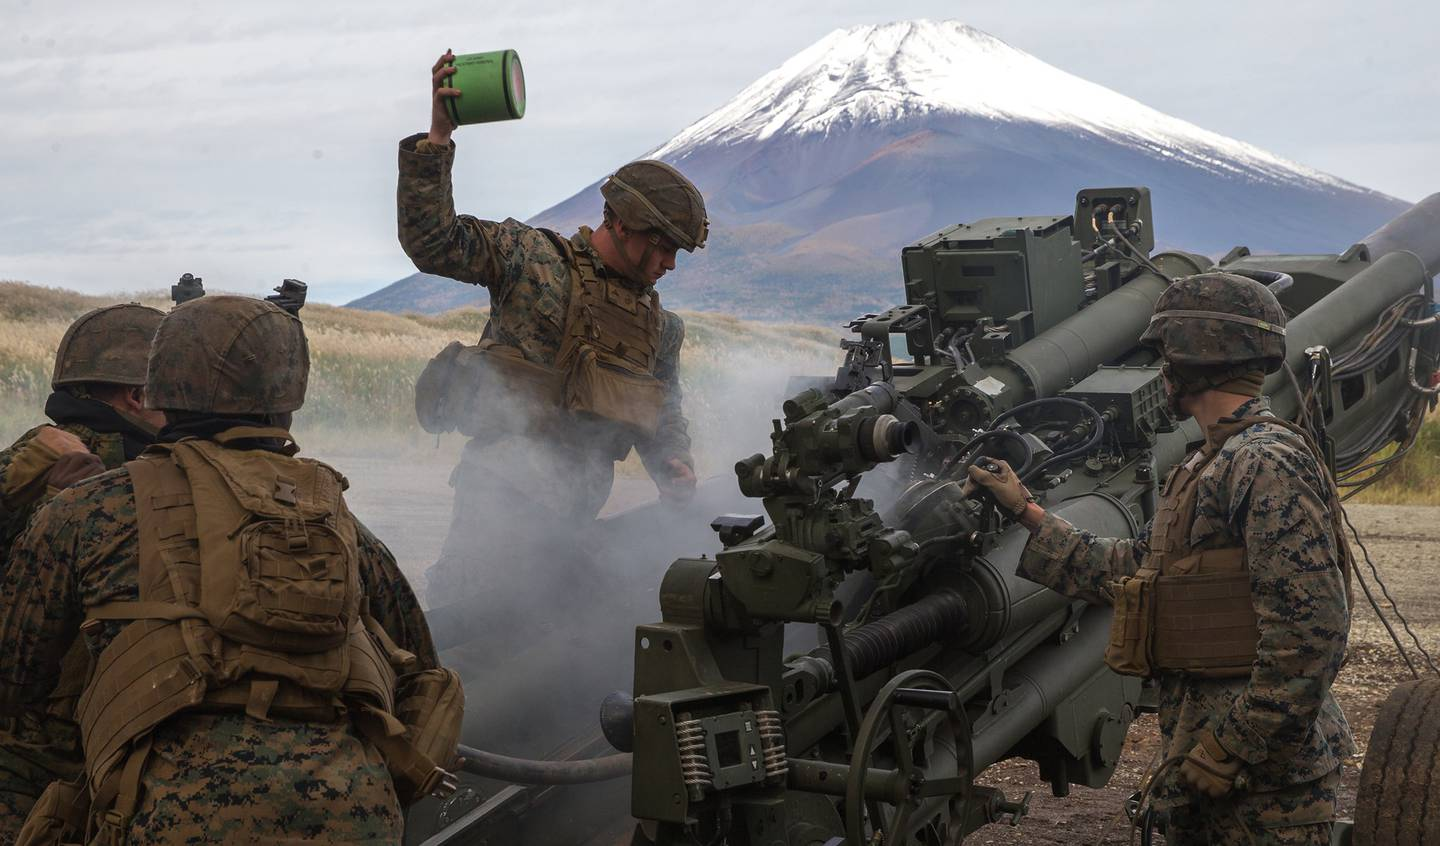 U.S. Marines prepare to fire an M777A2 155mm Howitzer as a part of the Artillery Relocation Training Program 20.3 at Combined Arms Training Center, Camp Fuji, Japan, Oct. 20, 2020.